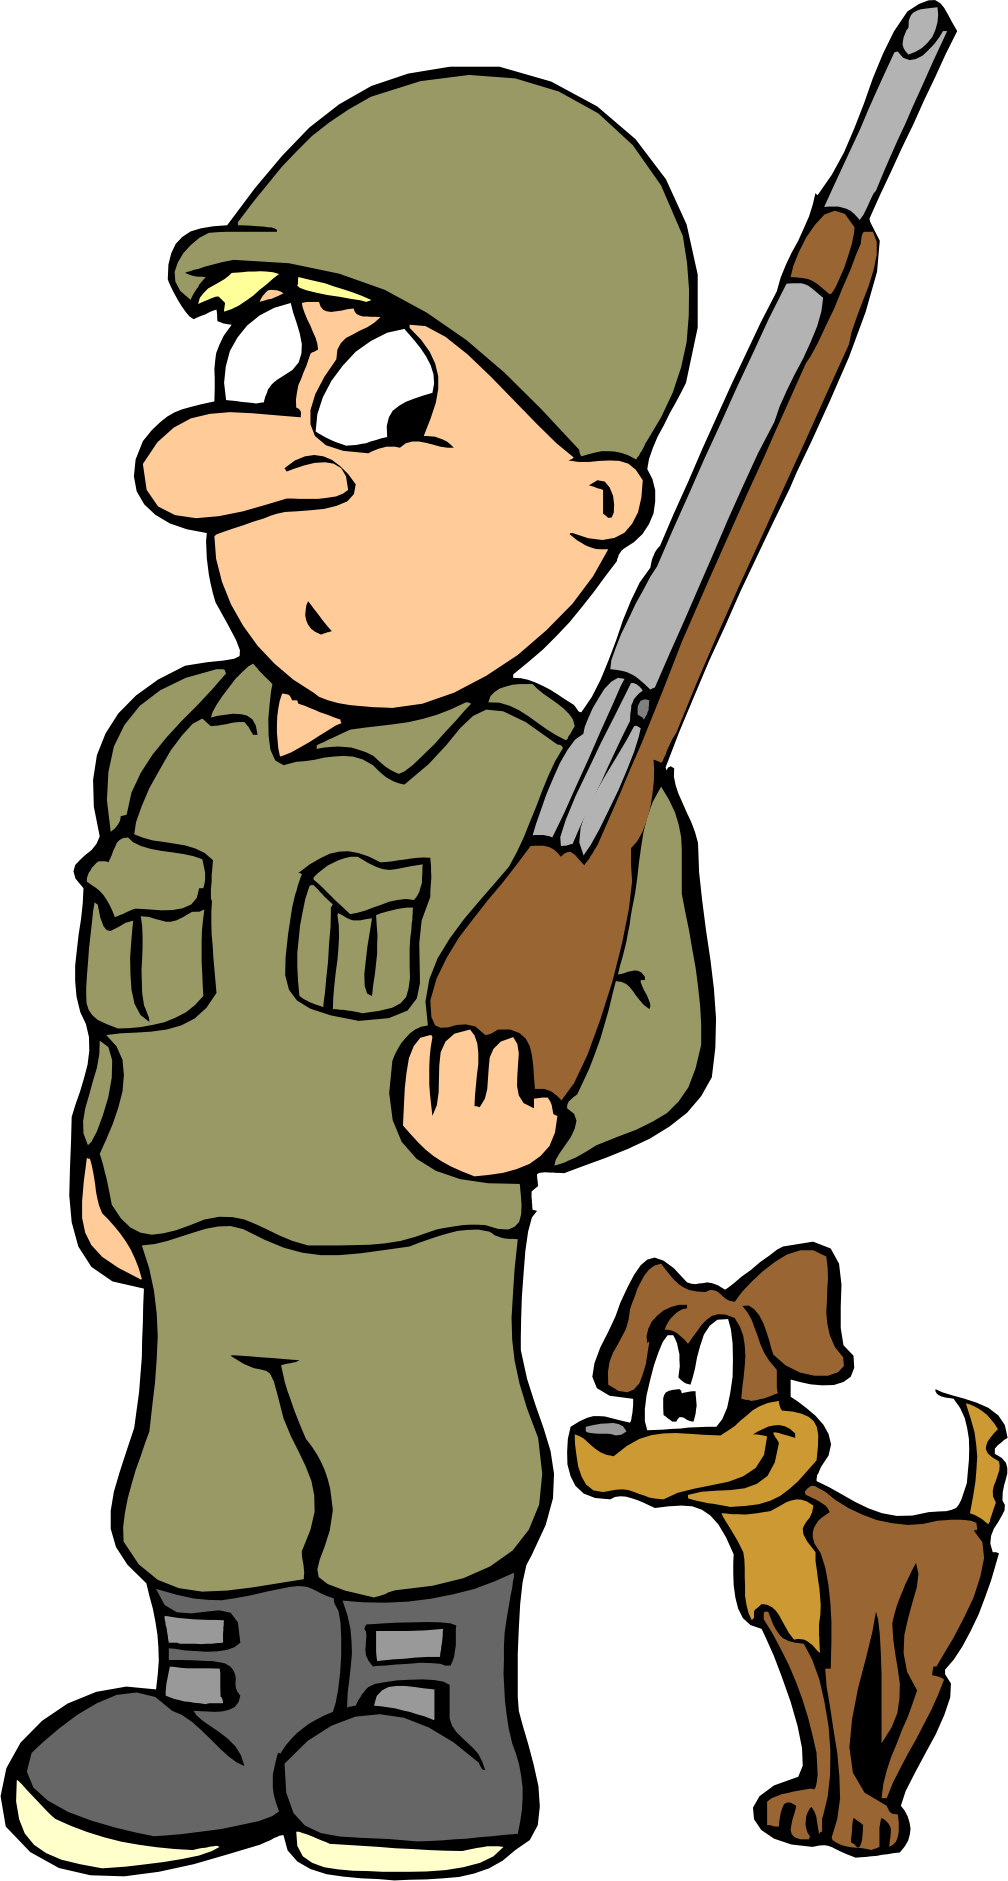 Army big image png. Soldiers clipart foji